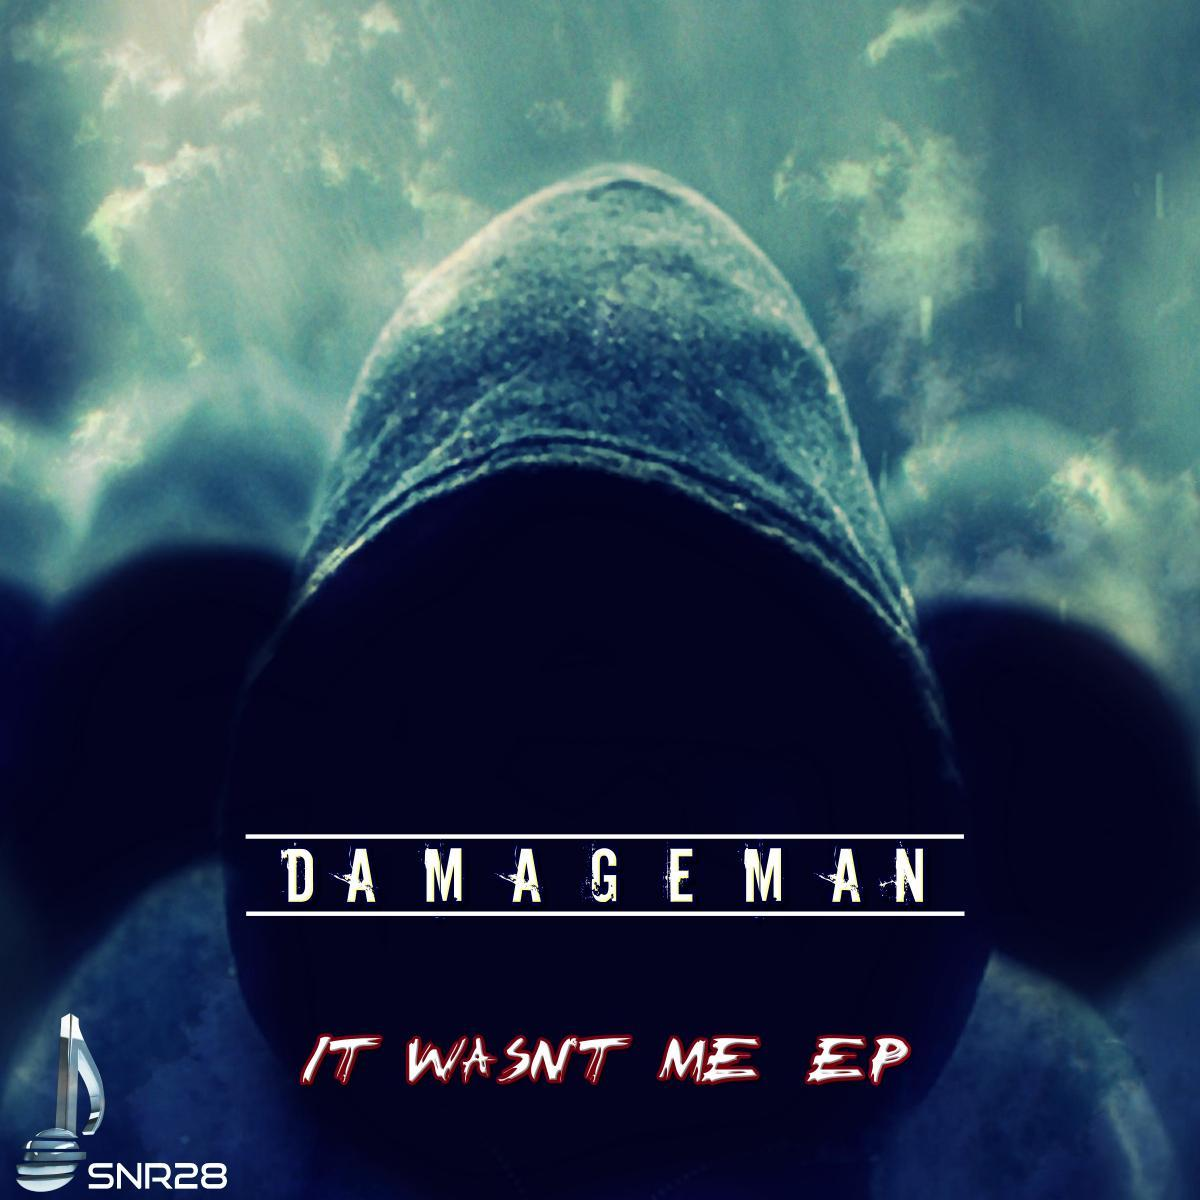 Damageman - It Wasn't Me